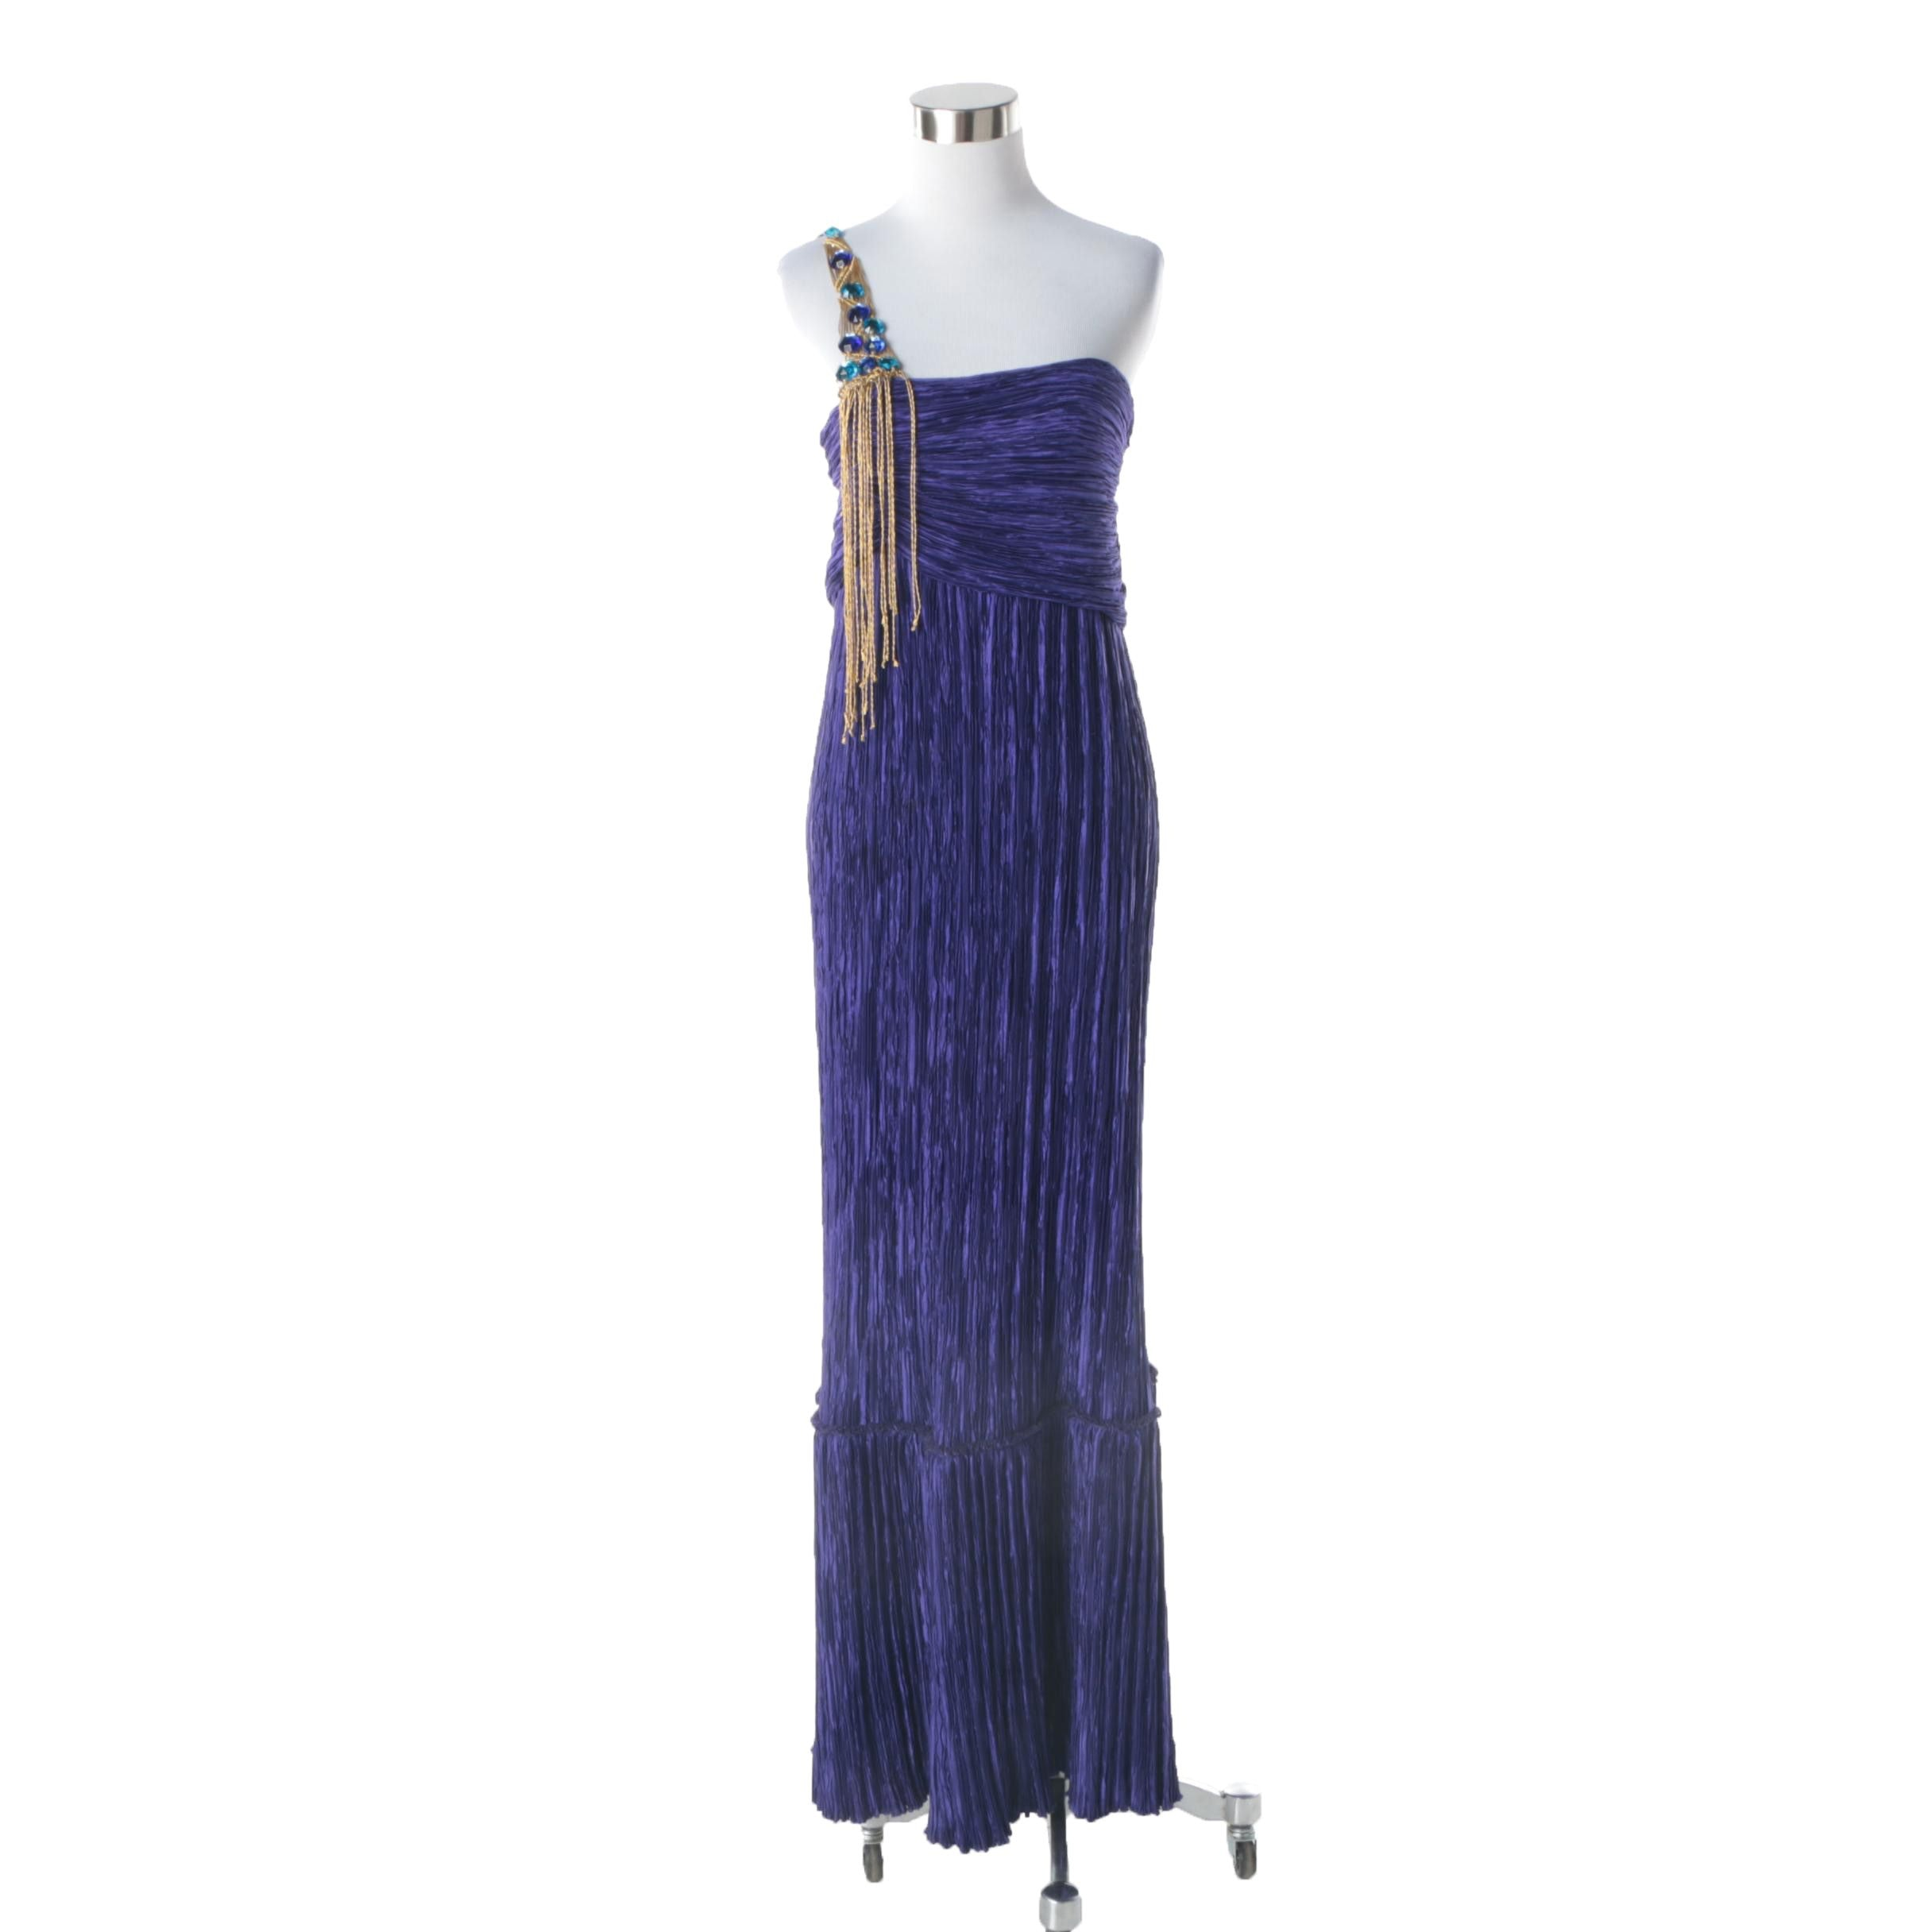 1980s Vintage One-Shoulder Purple Pleated Maxi Evening Dress with Rhinestones